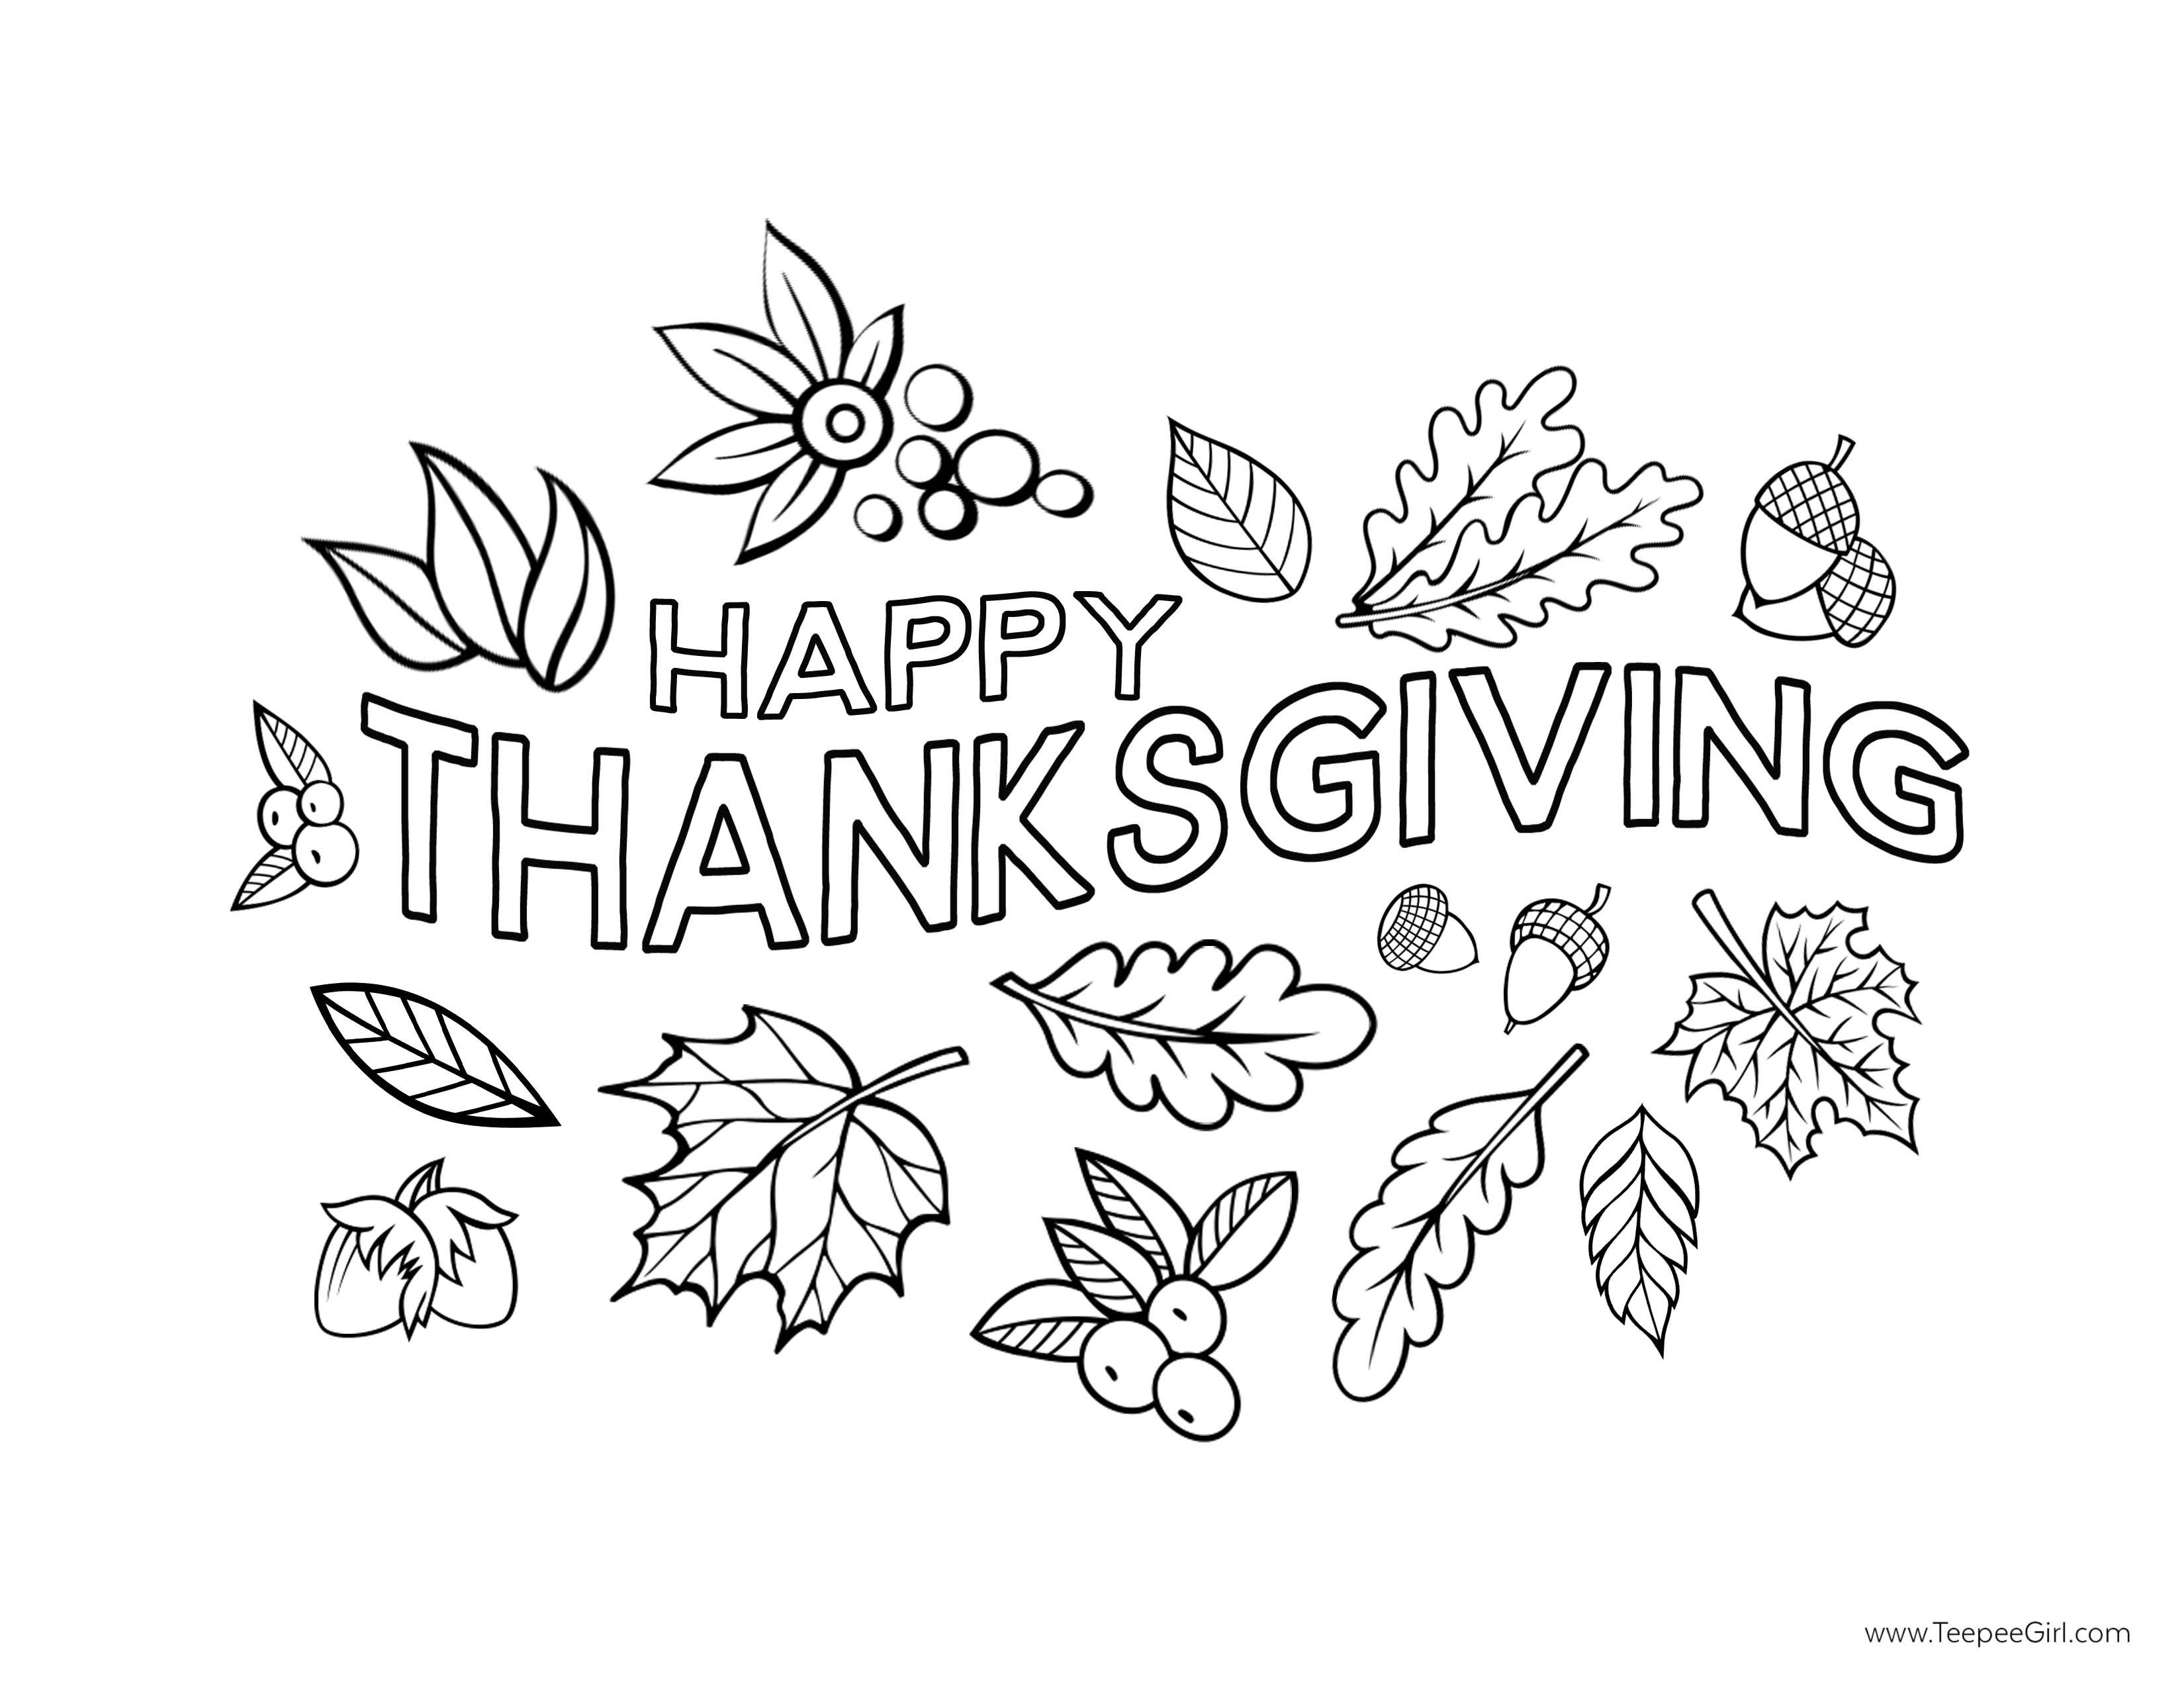 Free Thanksgiving Coloring Pages Www Ministeringprintables Com Free Thanksgiving Coloring Pages Thanksgiving Pictures To Color Thanksgiving Color